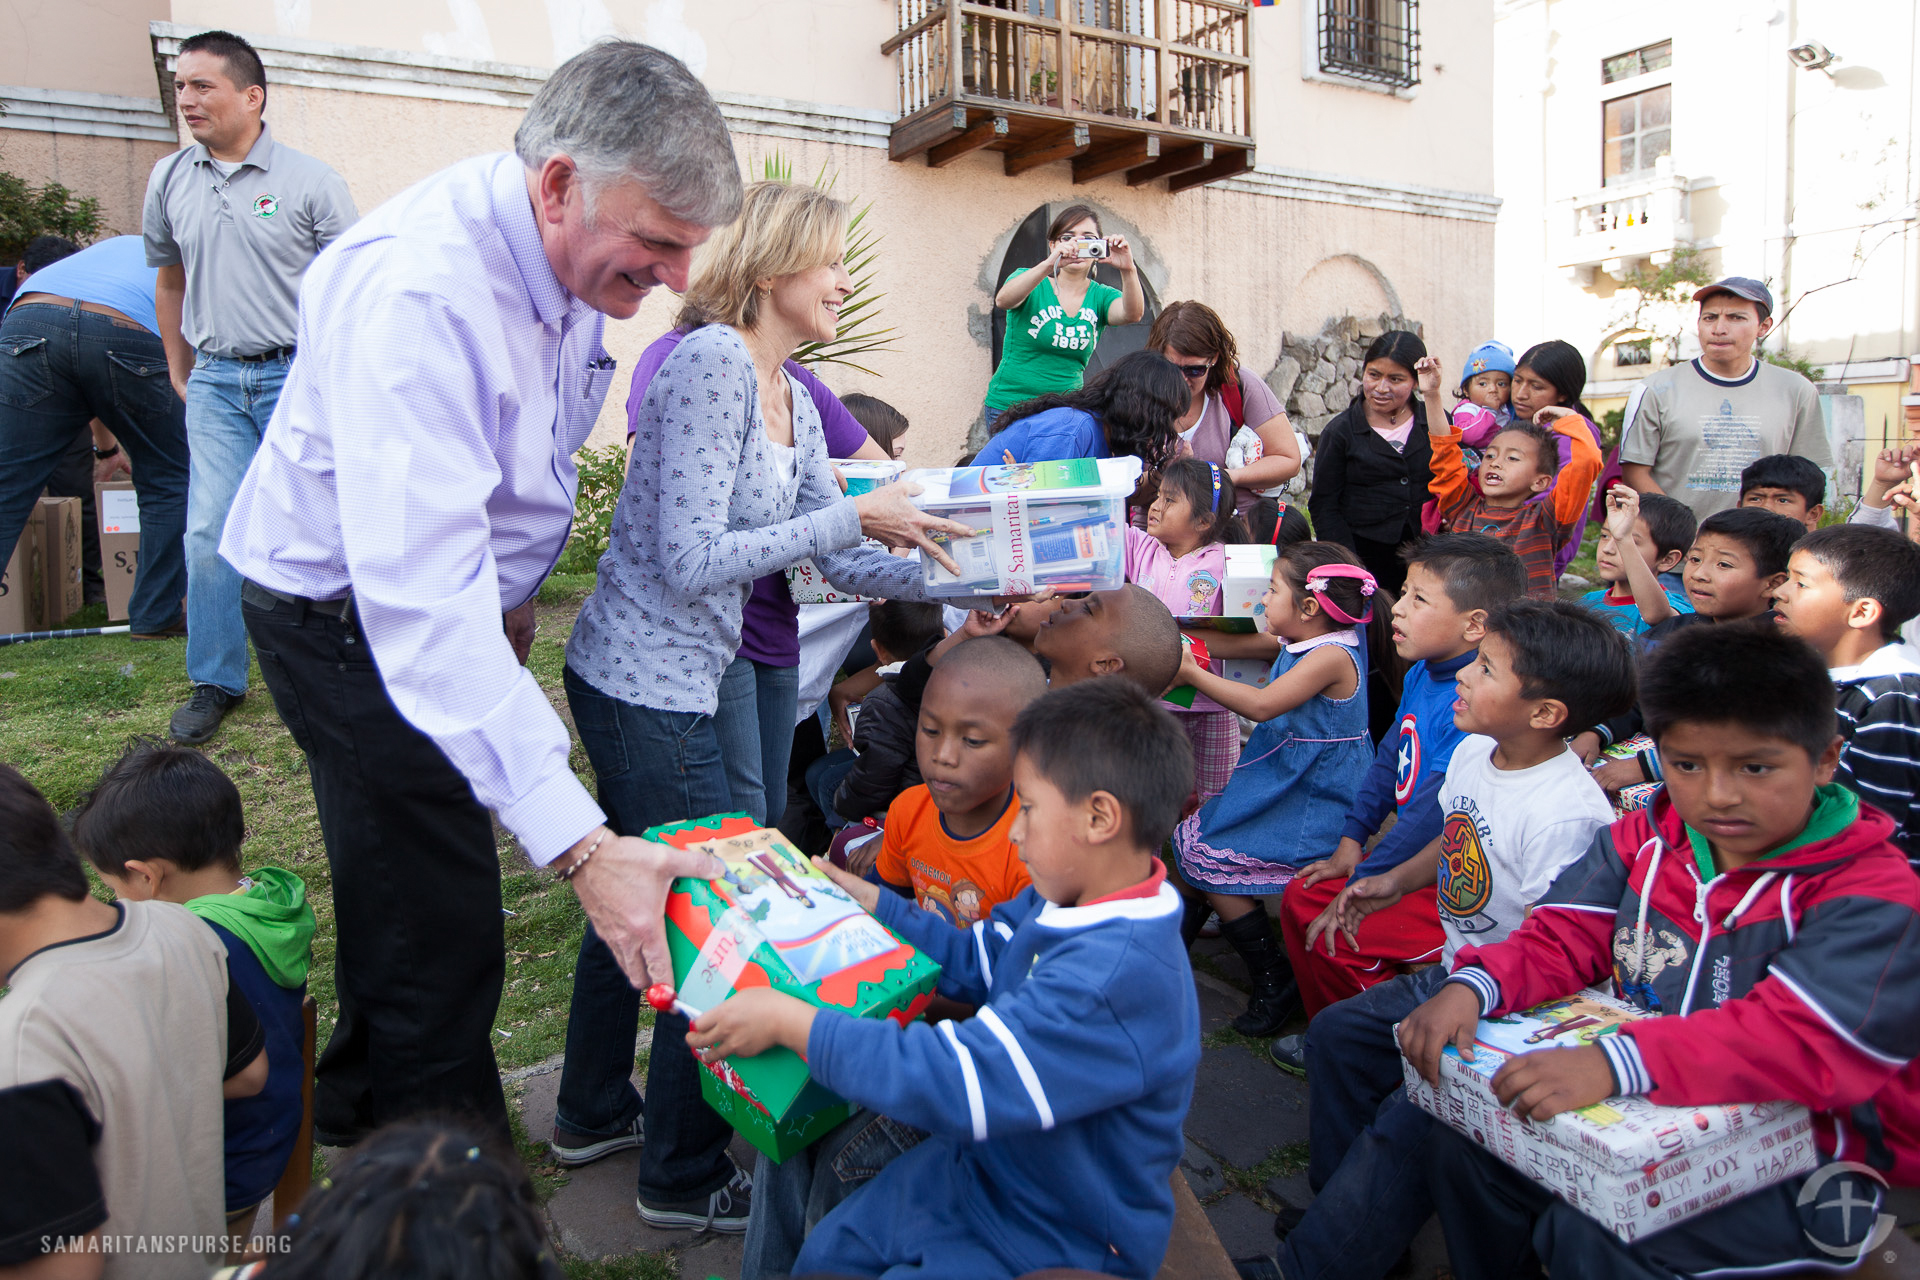 Michael W. Smith's wife Debbie helps Franklin Graham hand out shoe boxes.